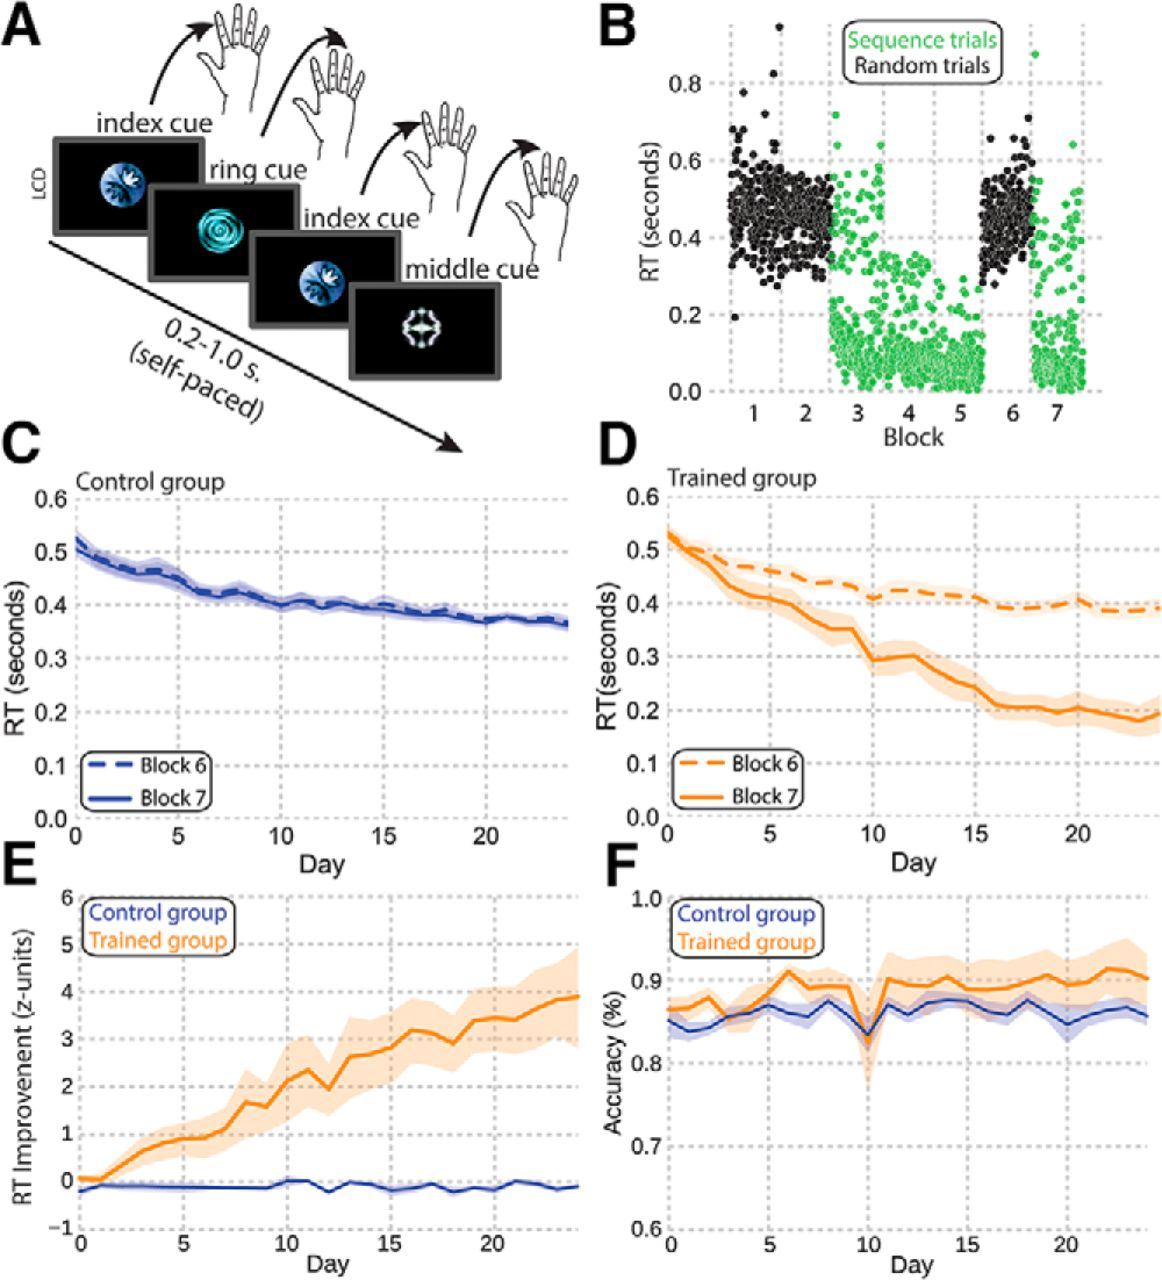 Binding During Sequence Learning Does Not Alter Cortical